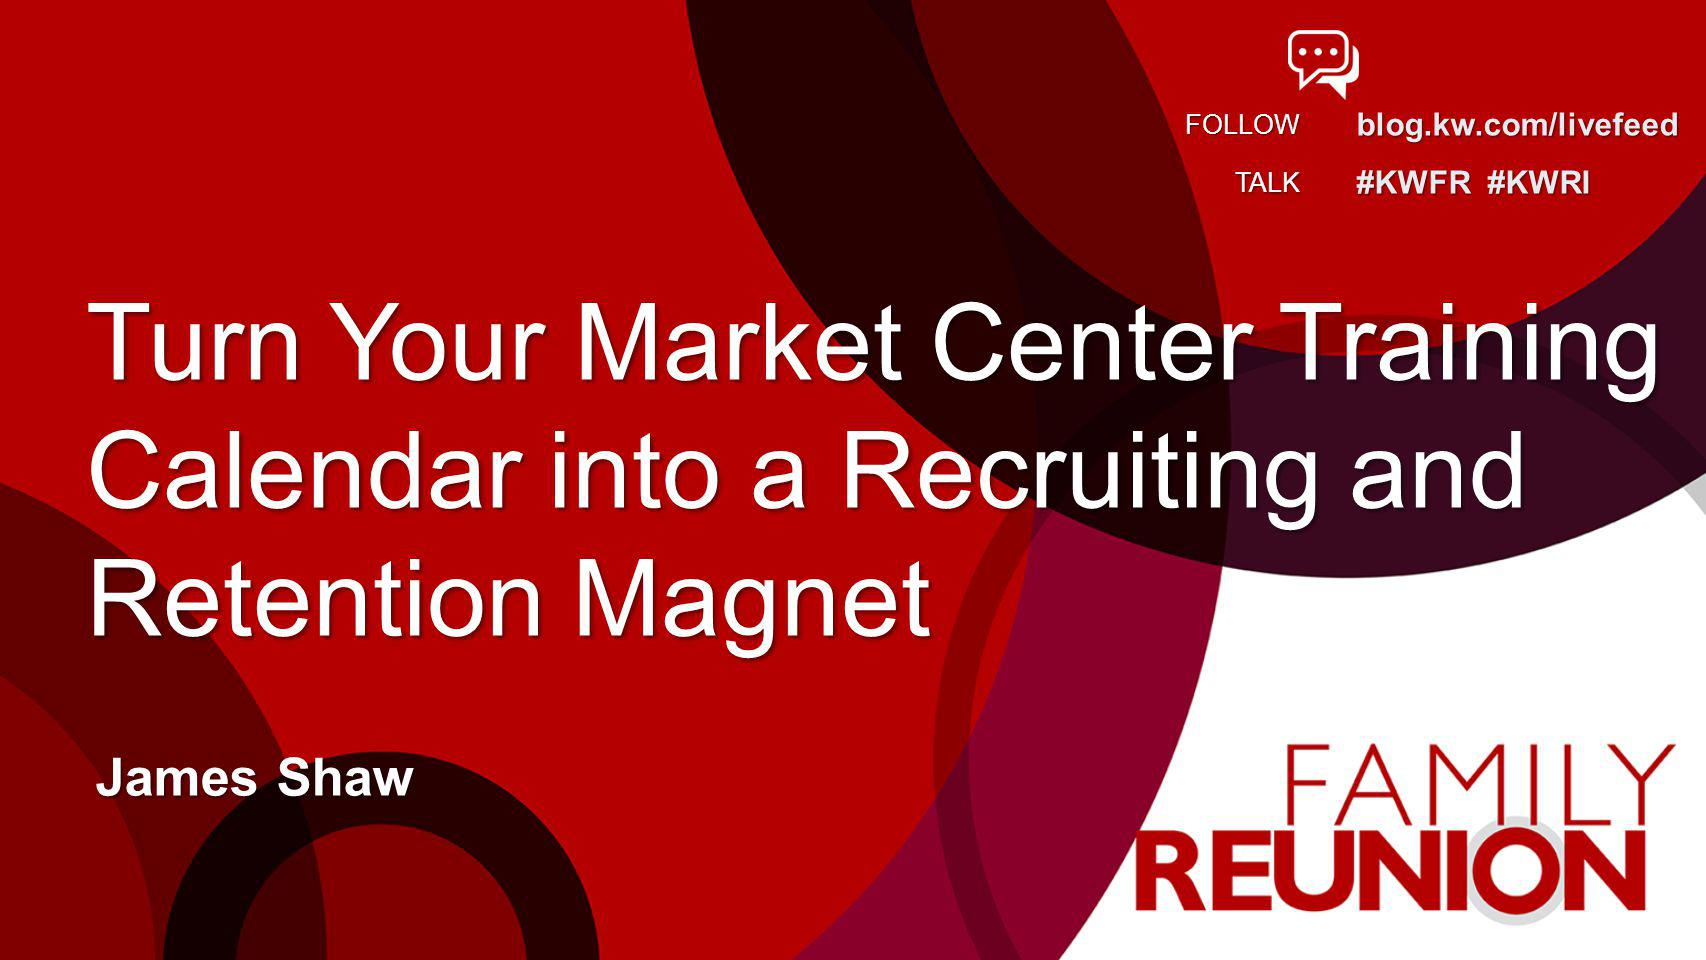 blog.kw.com/livefeed #KWFR #KWRI FOLLOW TALK Turn Your Market Center Training Calendar into a Recruiting and Retention Magnet James Shaw